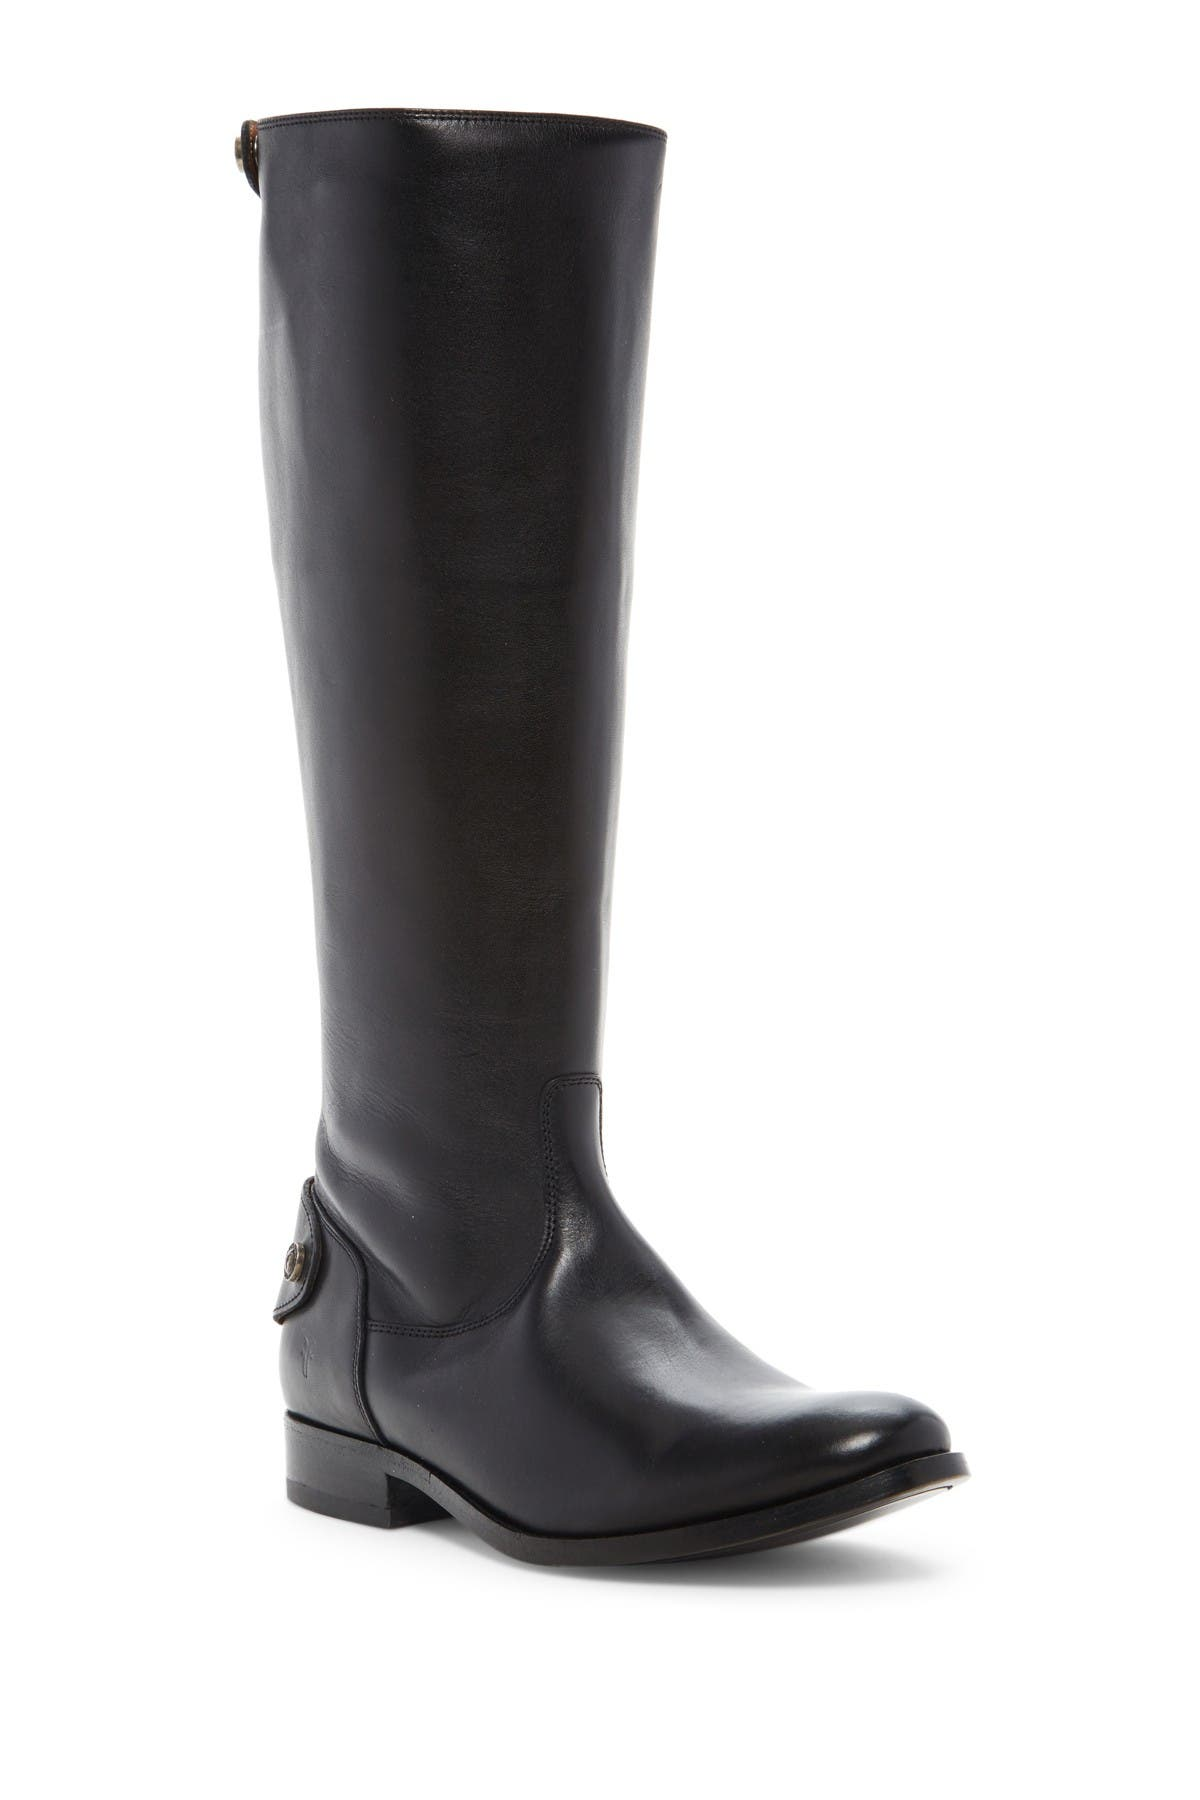 Image of Frye Melissa Button Back Zip Boot - Wide Calf Available